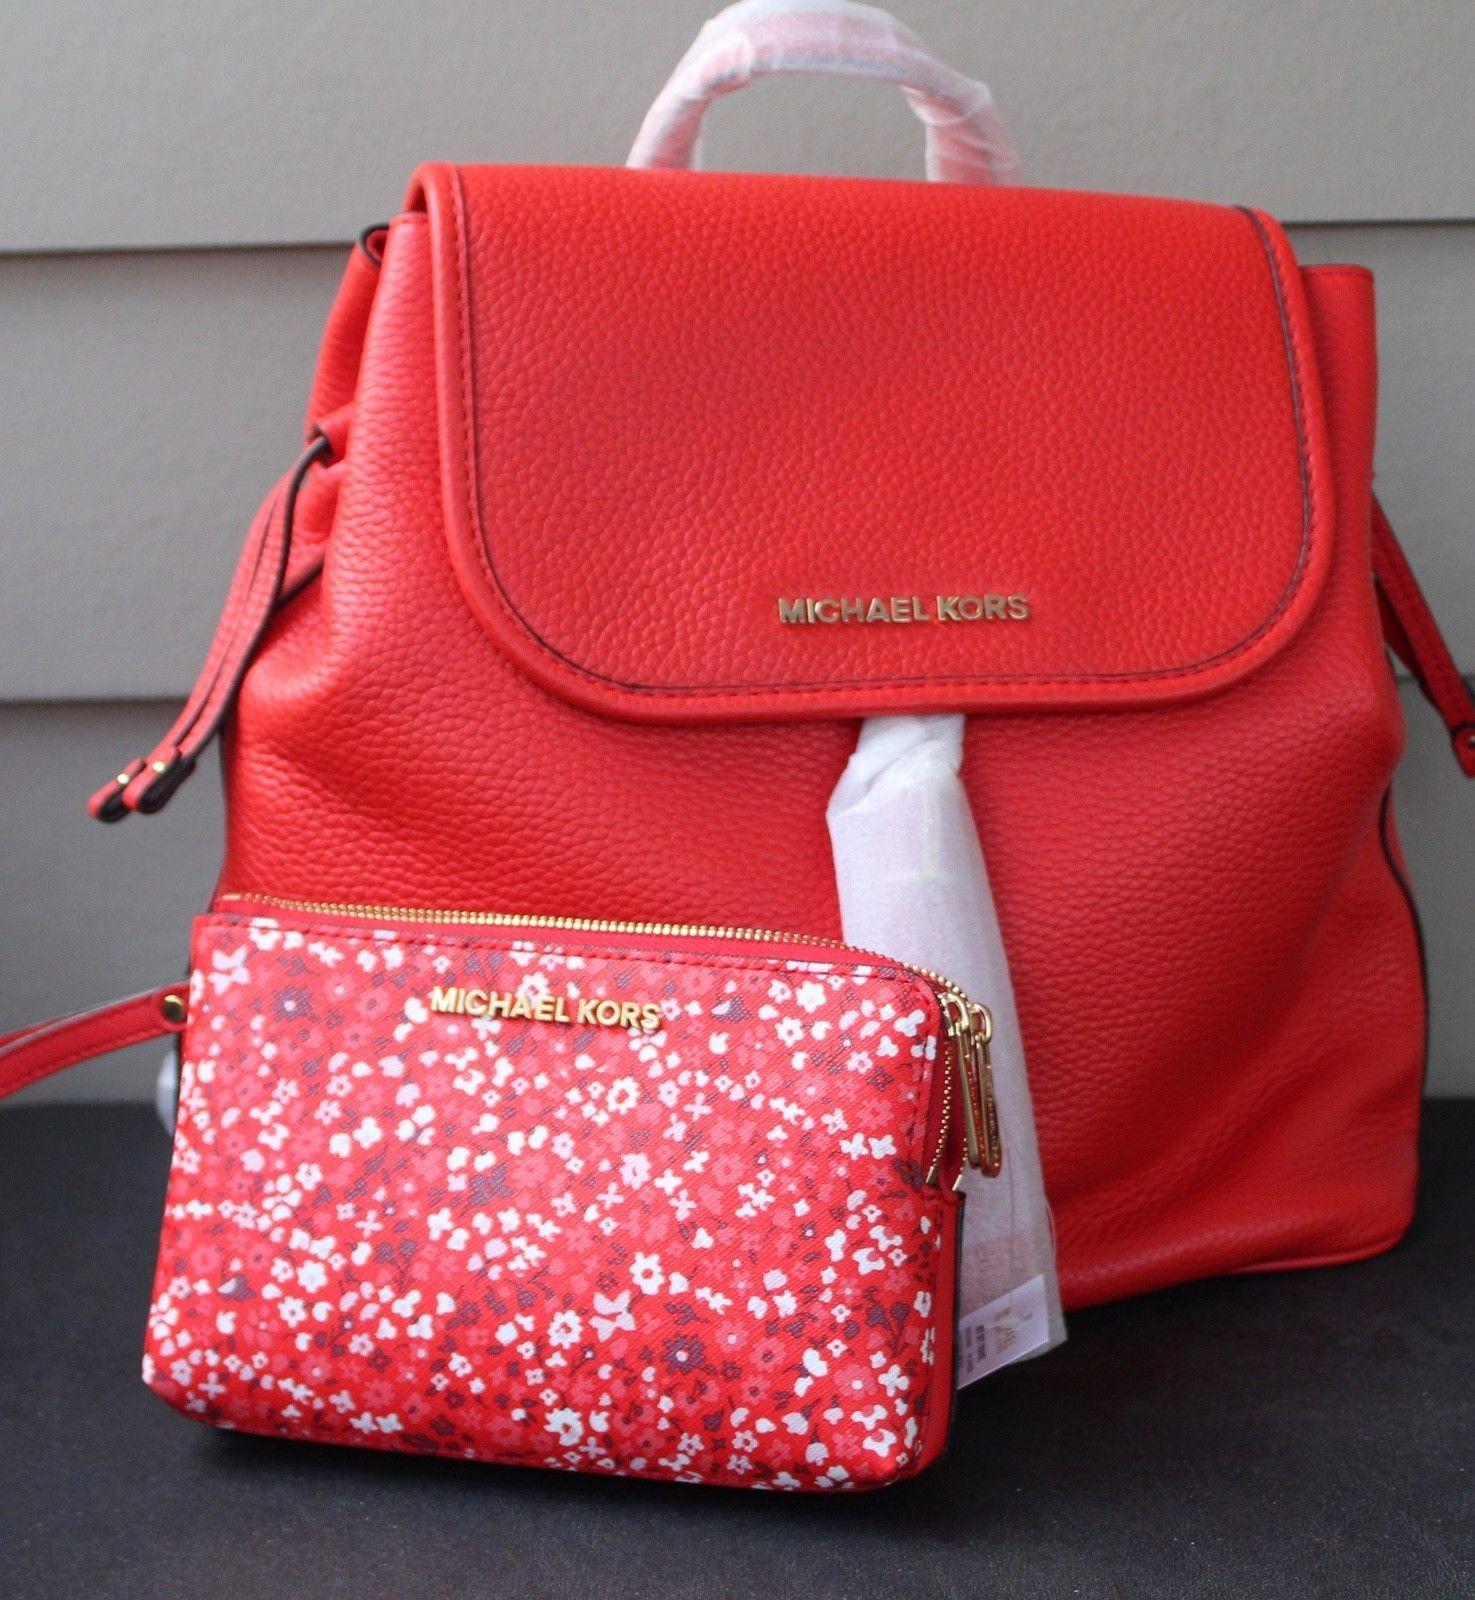 e9cd25daeaac S l1600. S l1600. Previous. NWT~ MICHAEL KORS BEDFORD SIENNA DRAWSTRING  BACKPACK LEATHER BAG ...